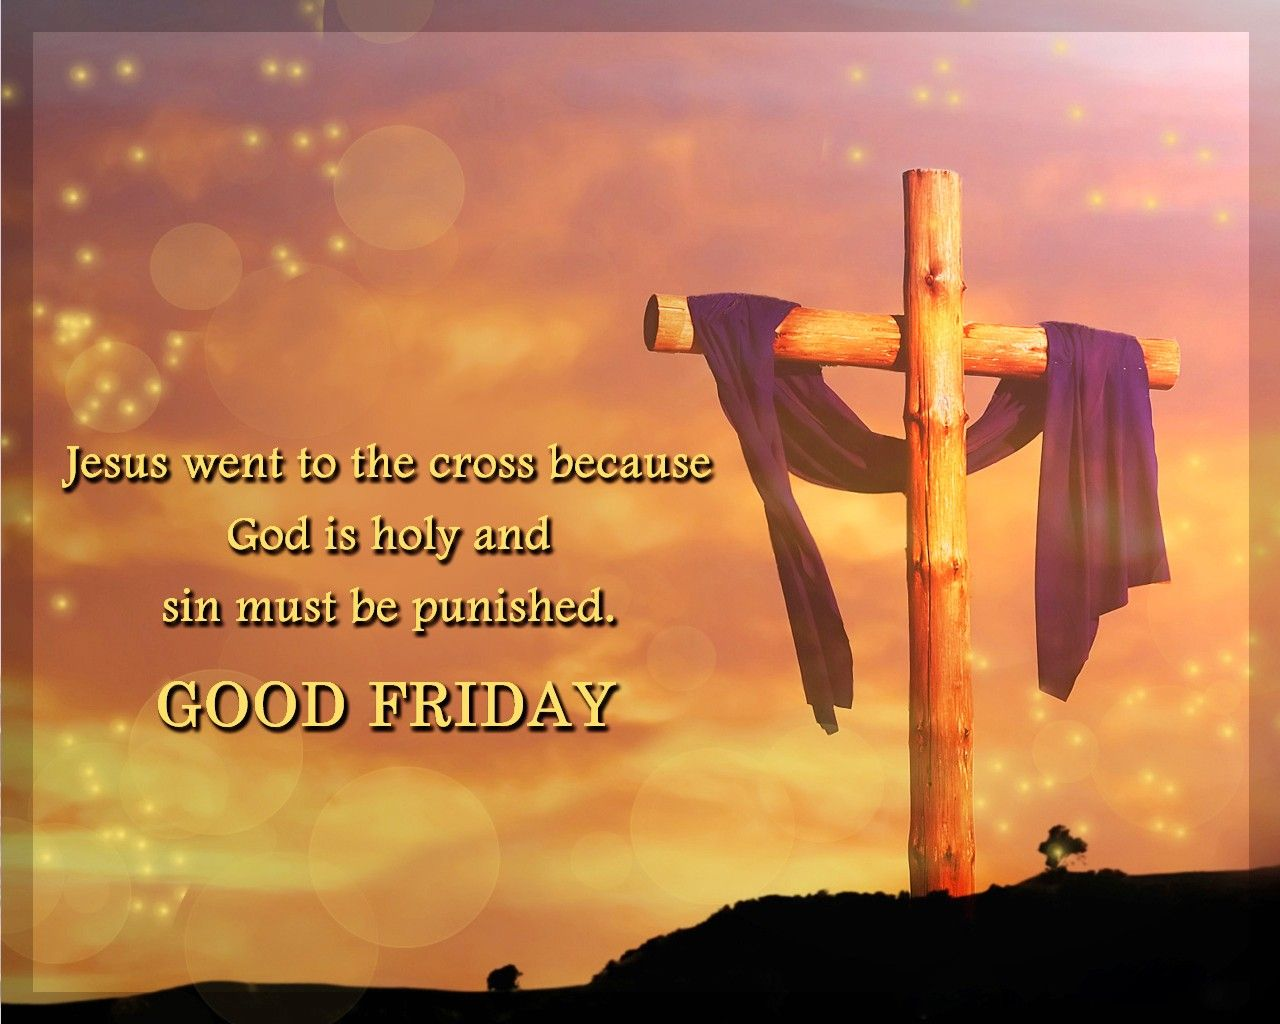 Good friday wishes happy easter 2017 pinterest wallpaper good friday wishes kristyandbryce Image collections